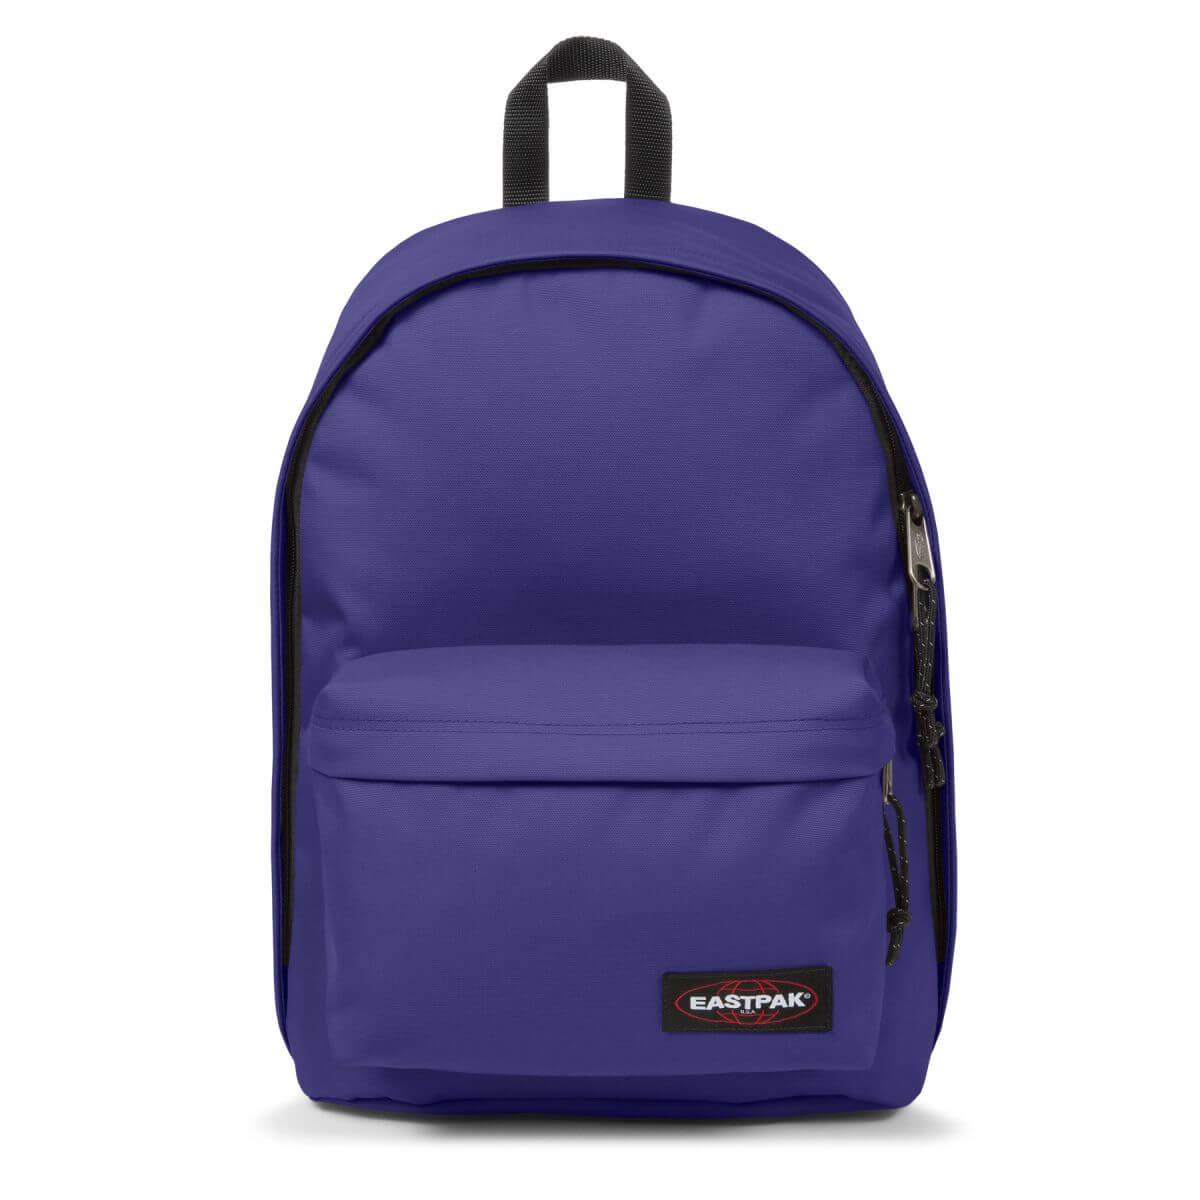 Eastpak Out Of Office Amethyst Purple